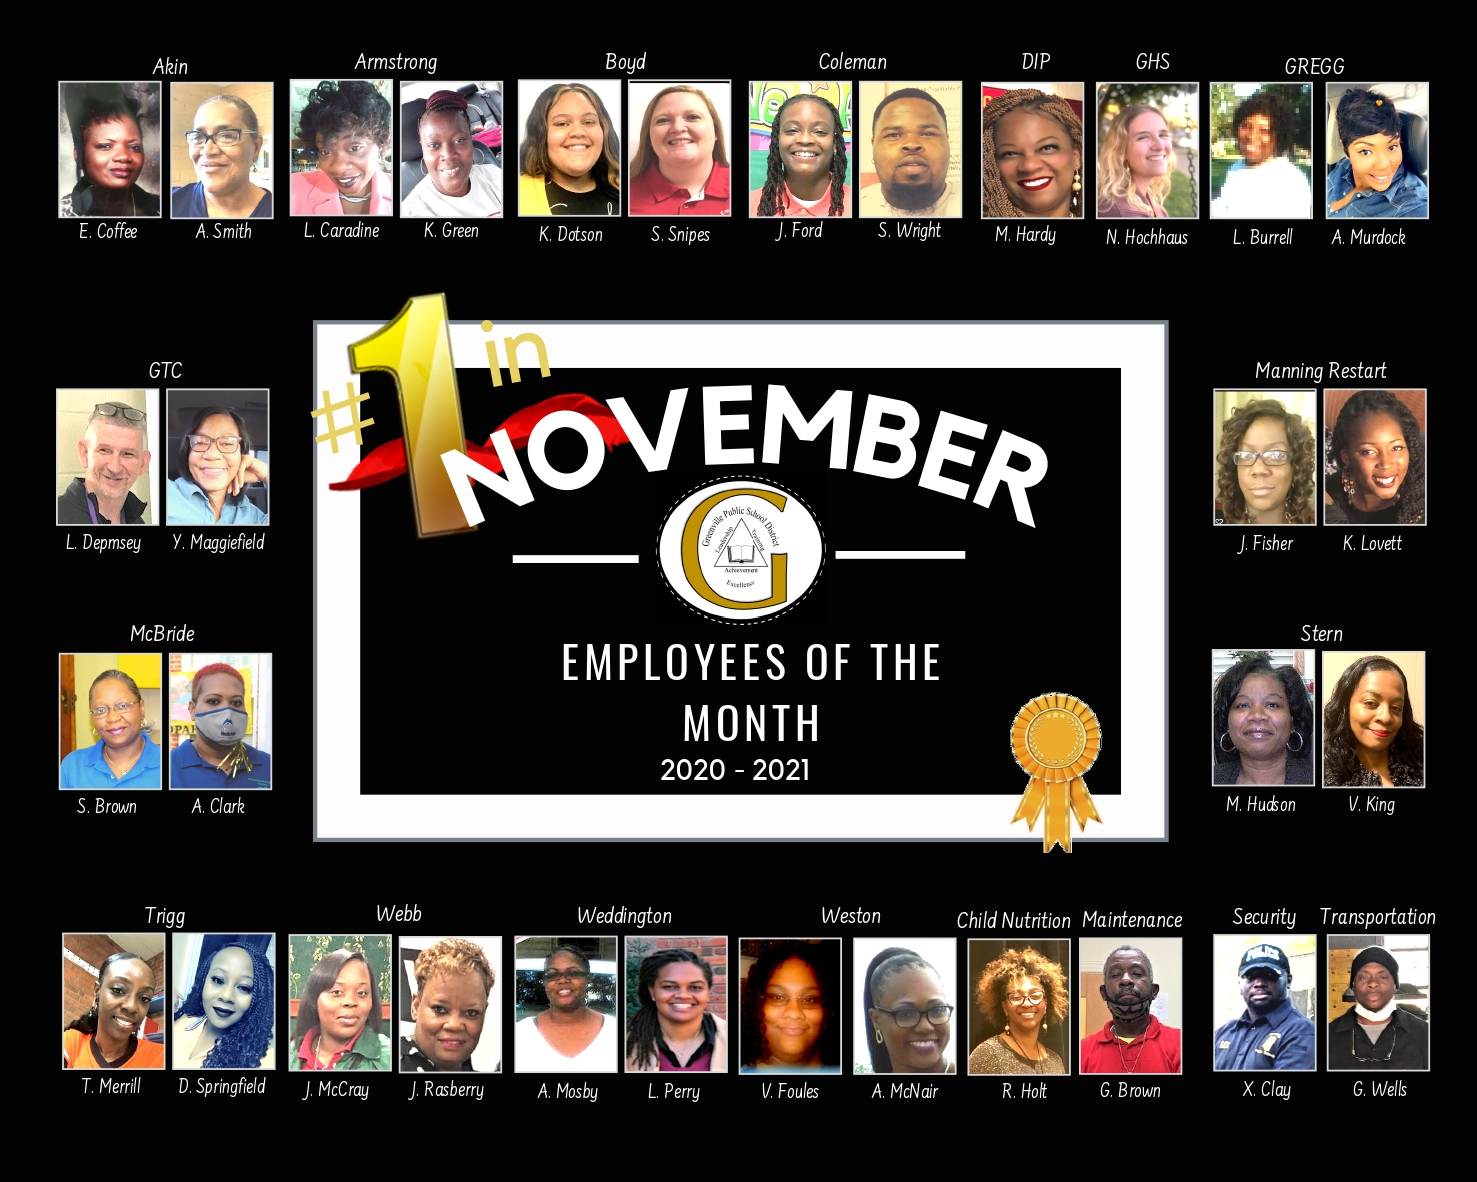 November Employees of the Month